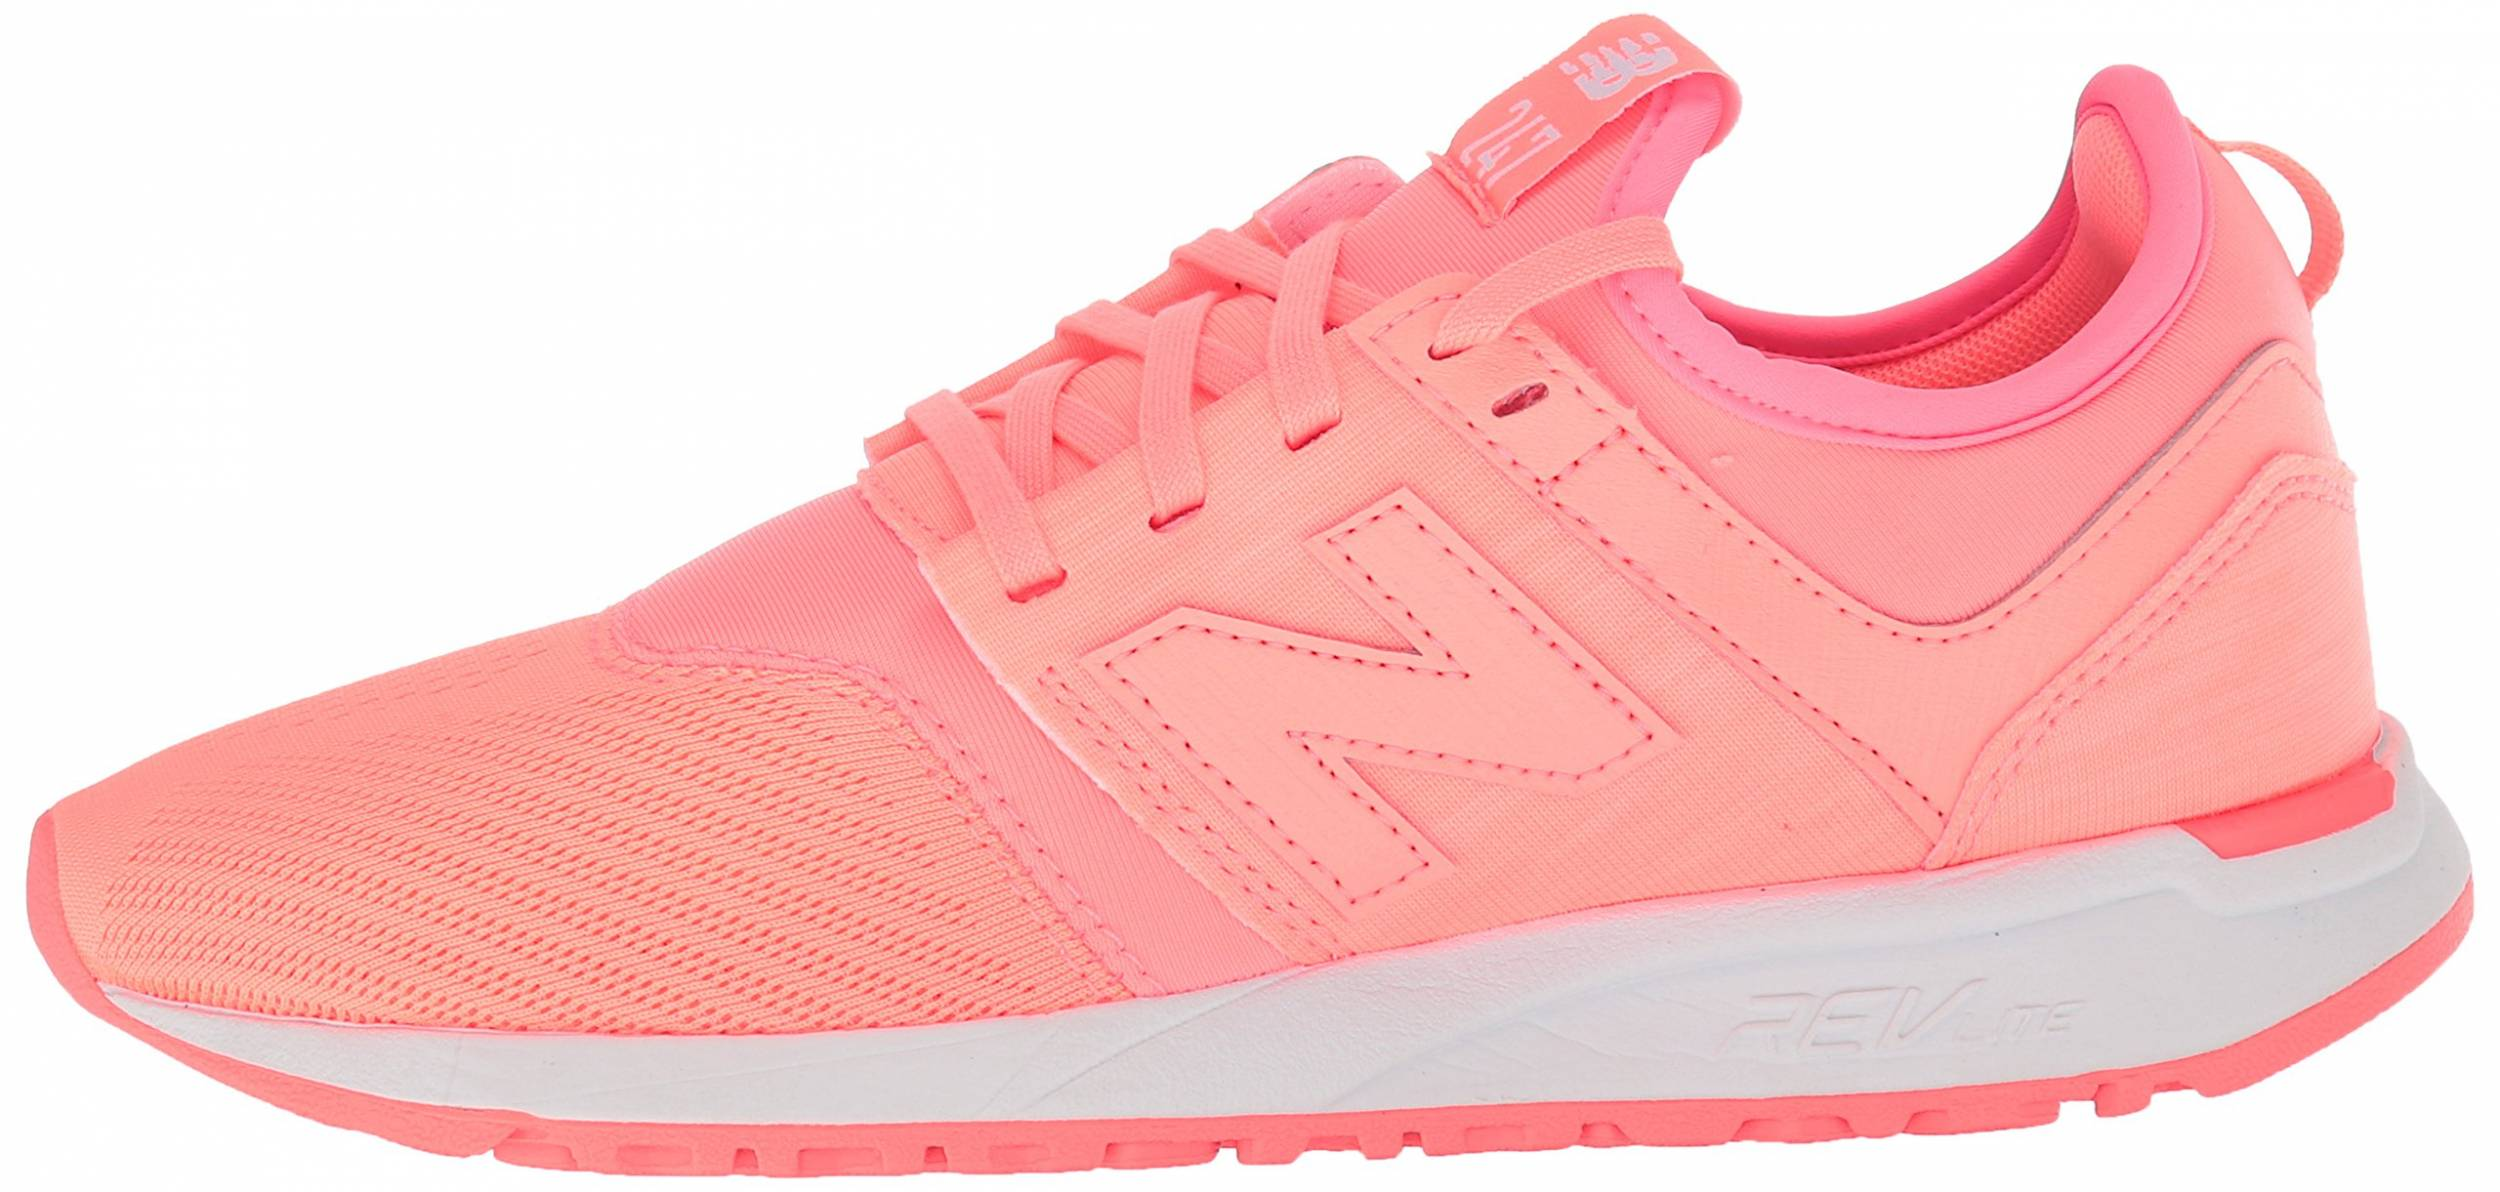 New Balance 247 sneakers in 7 colors (only $37)   RunRepeat